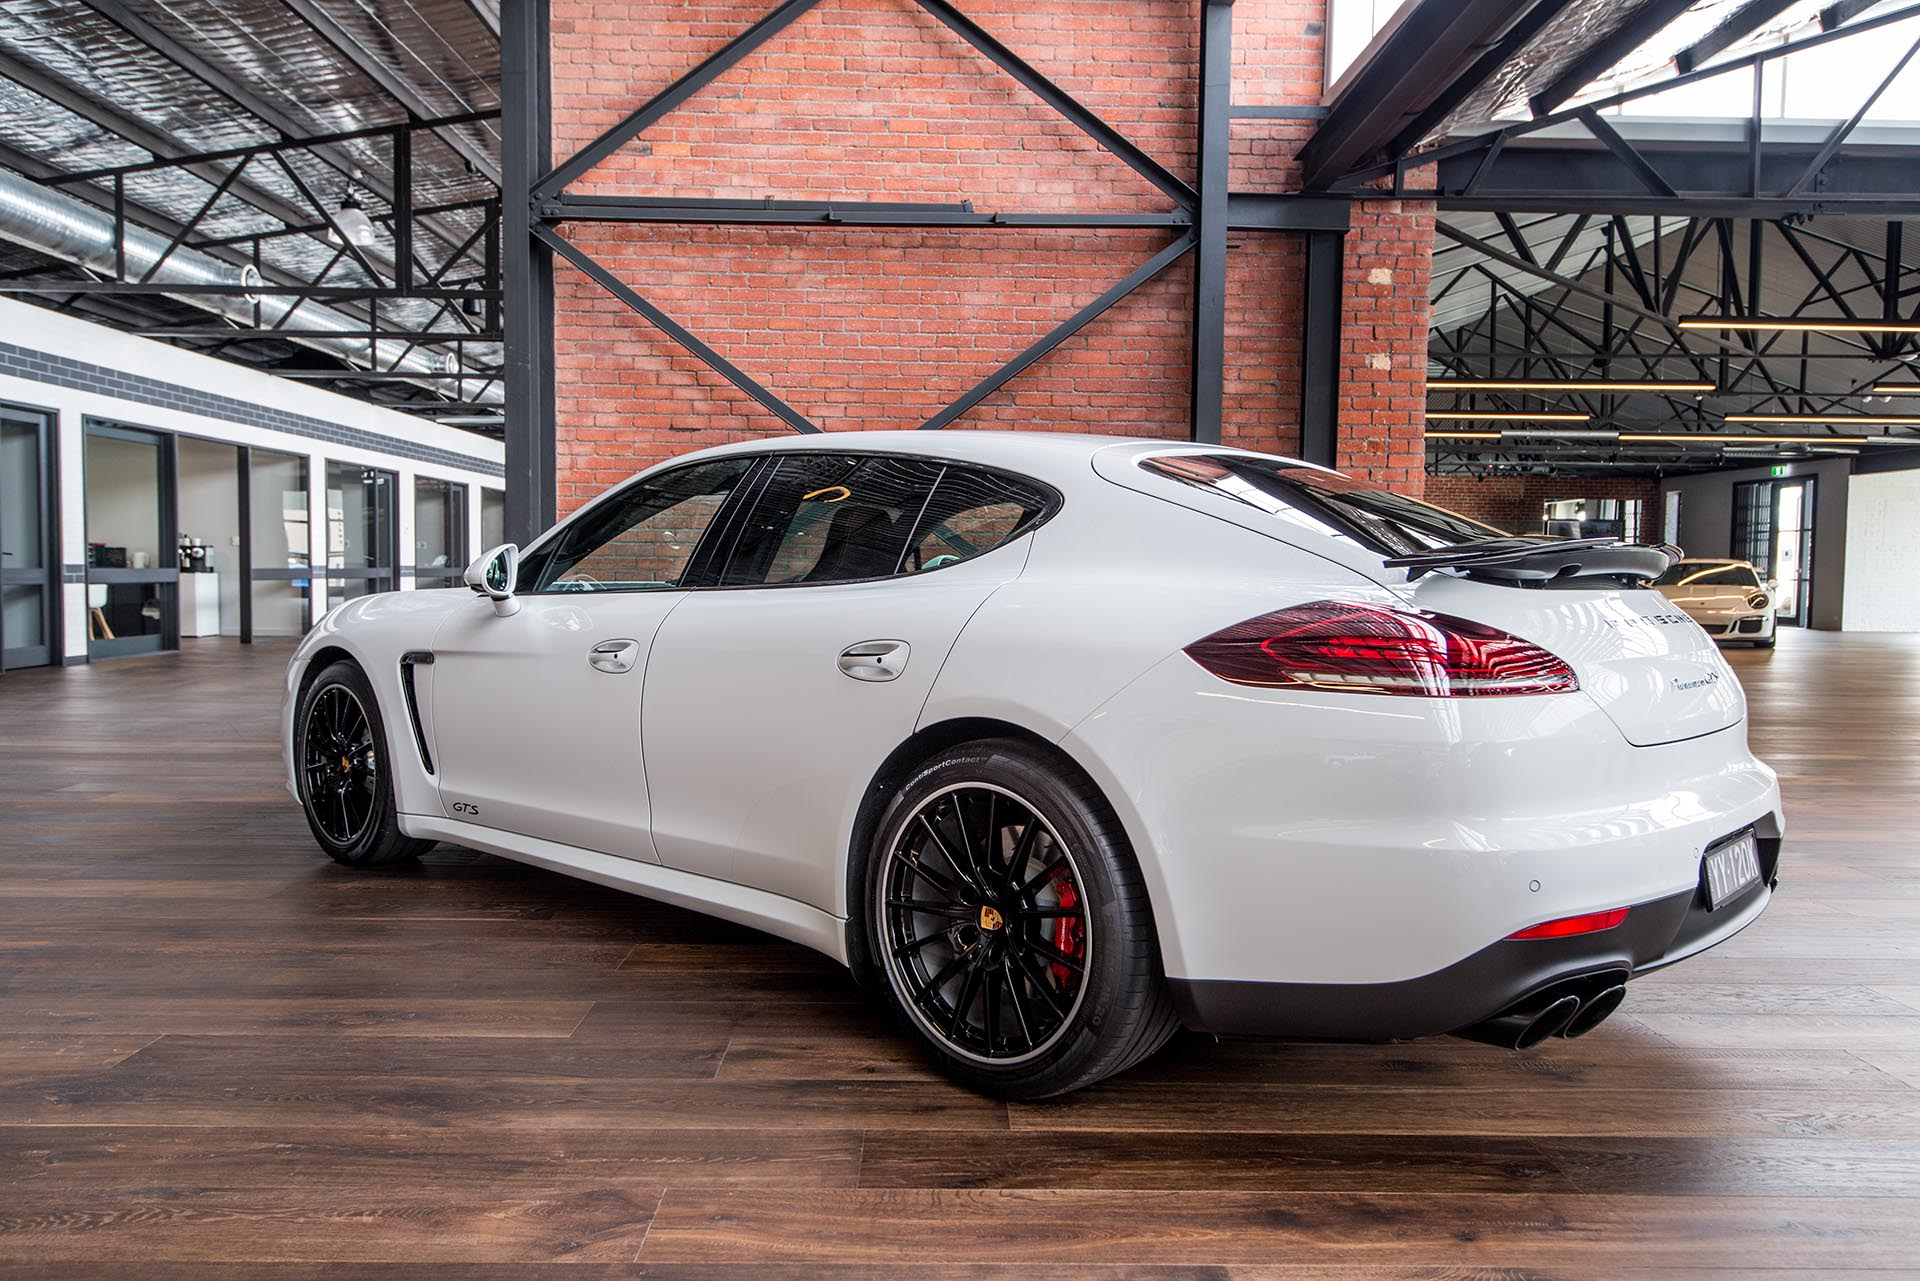 2016 Porsche Panamera Gts - Richmonds